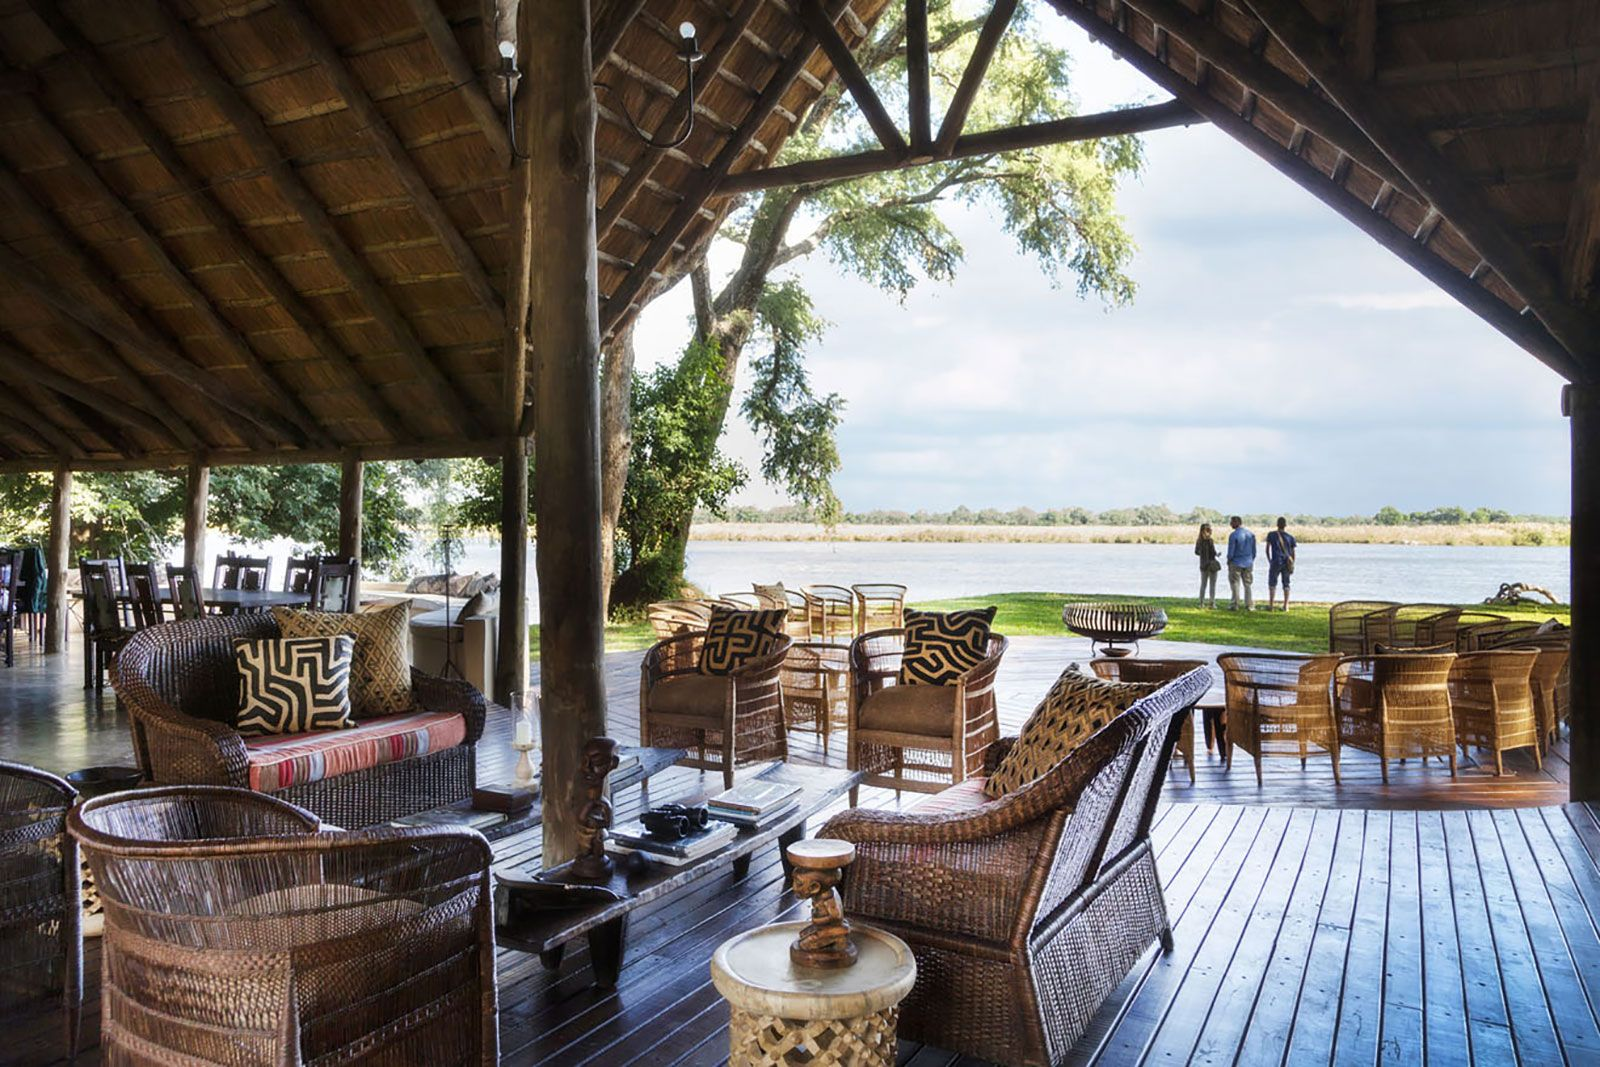 Mwambashi River Lodge